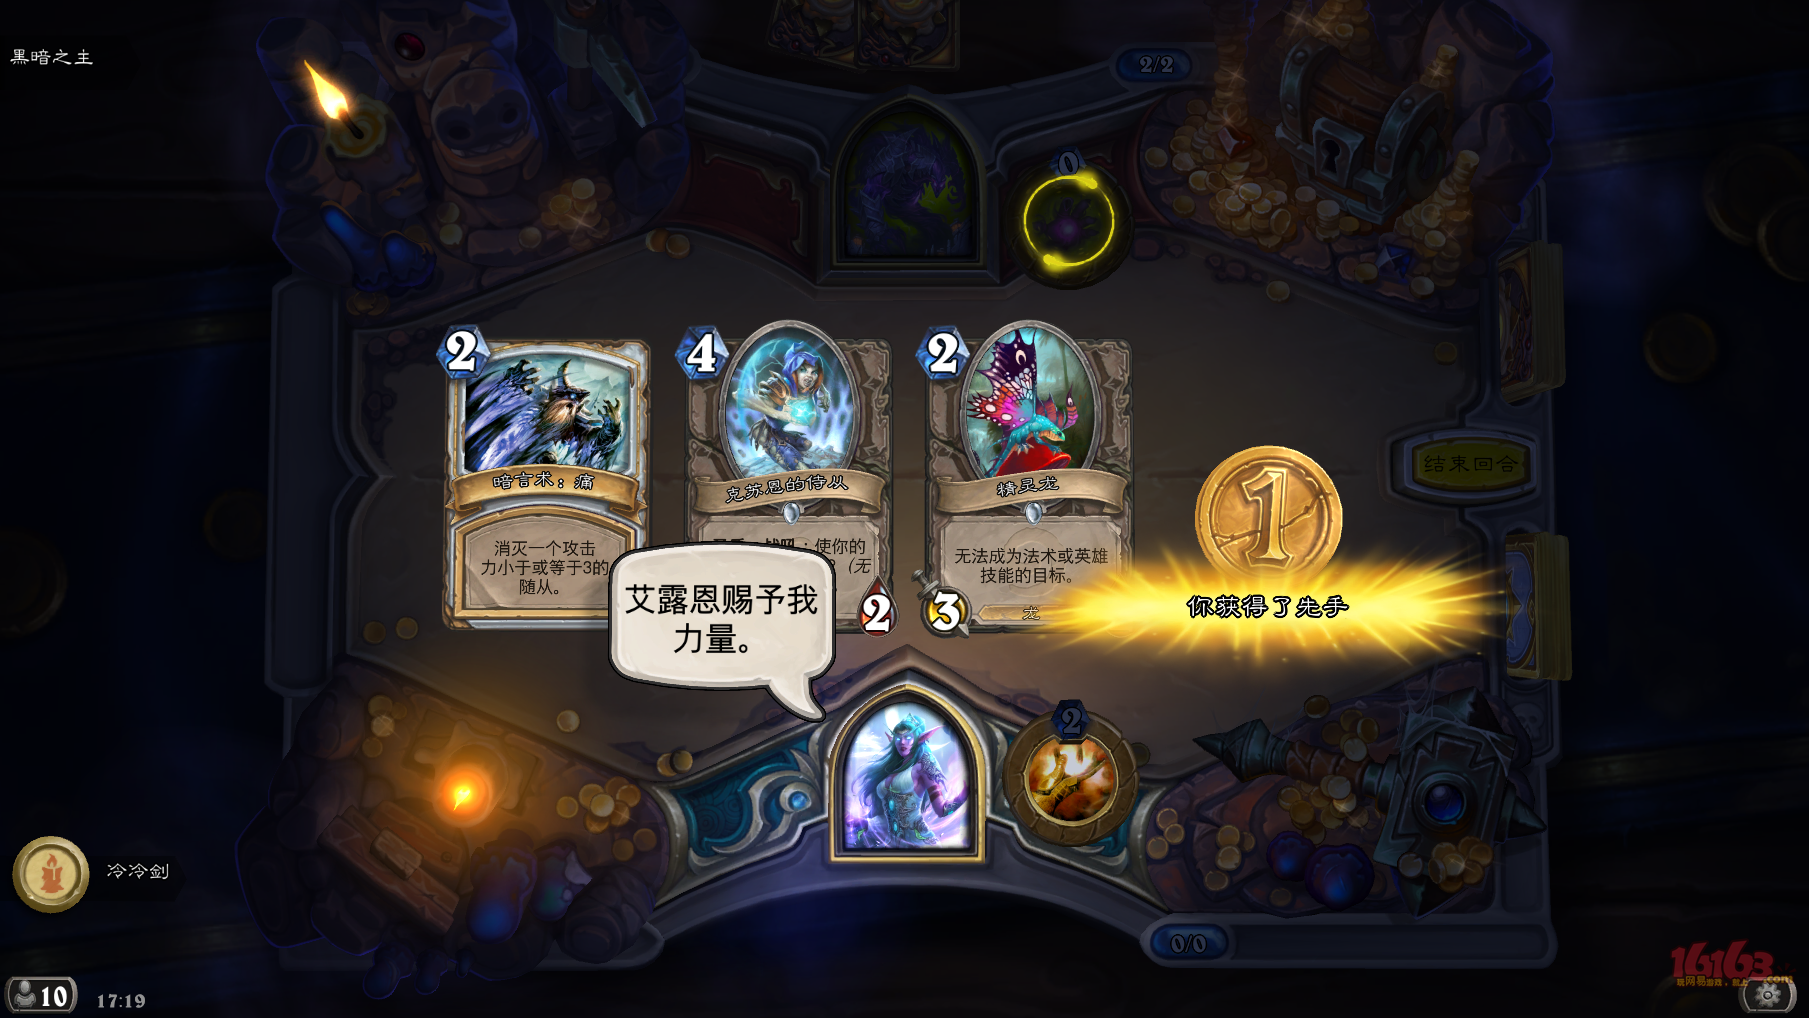 Hearthstone Screenshot 12-12-17 17.19.07.png